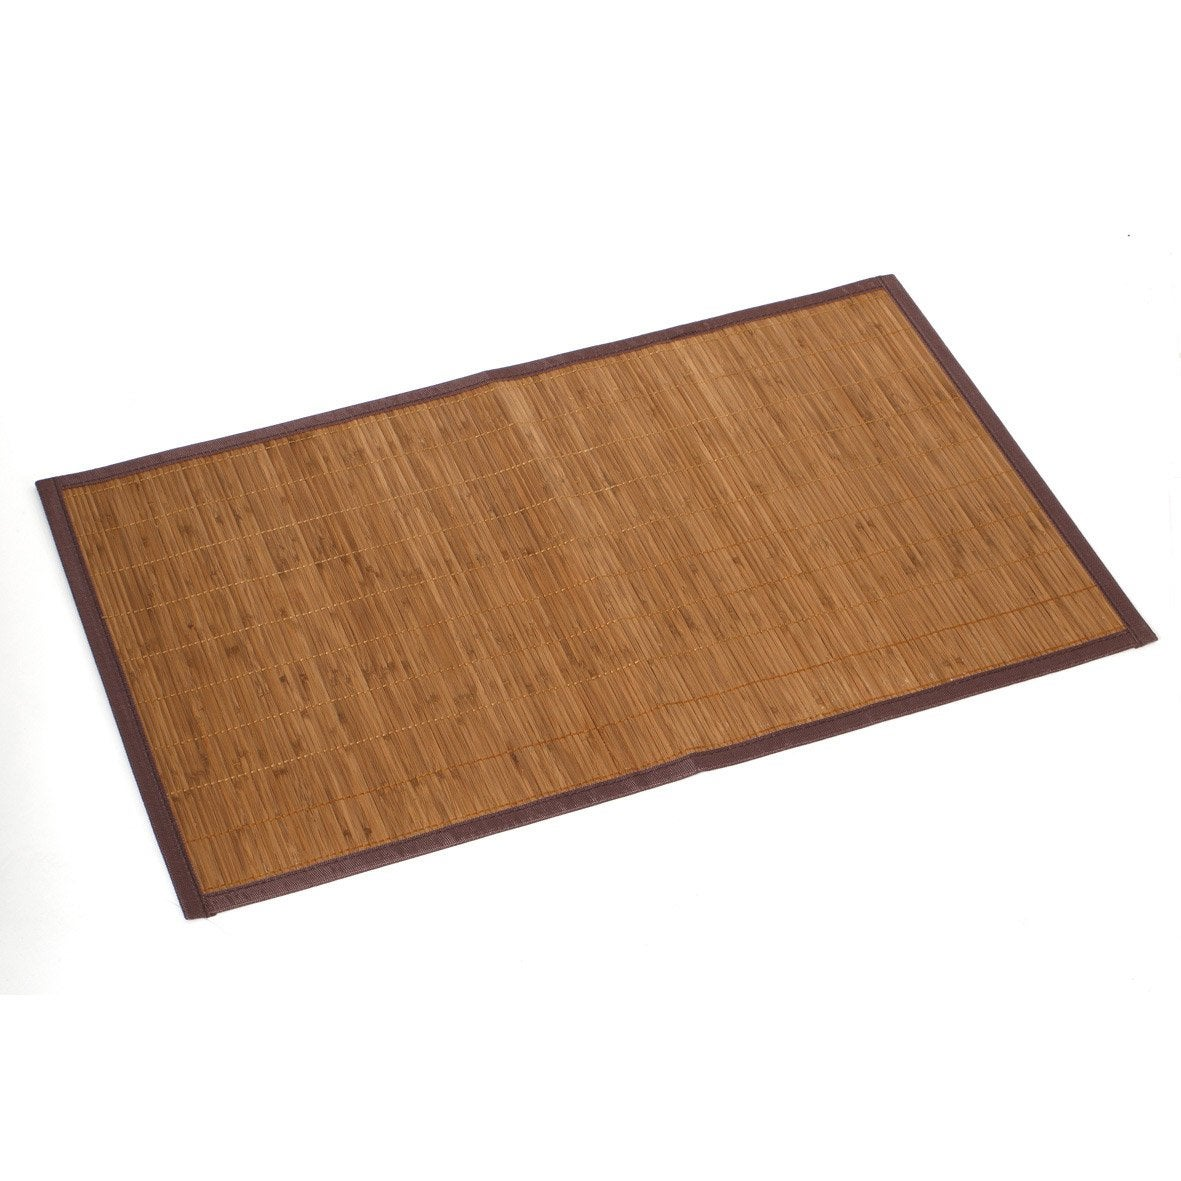 Leroy merlin tapis bambou 28 images carrelage design for Carrelage design